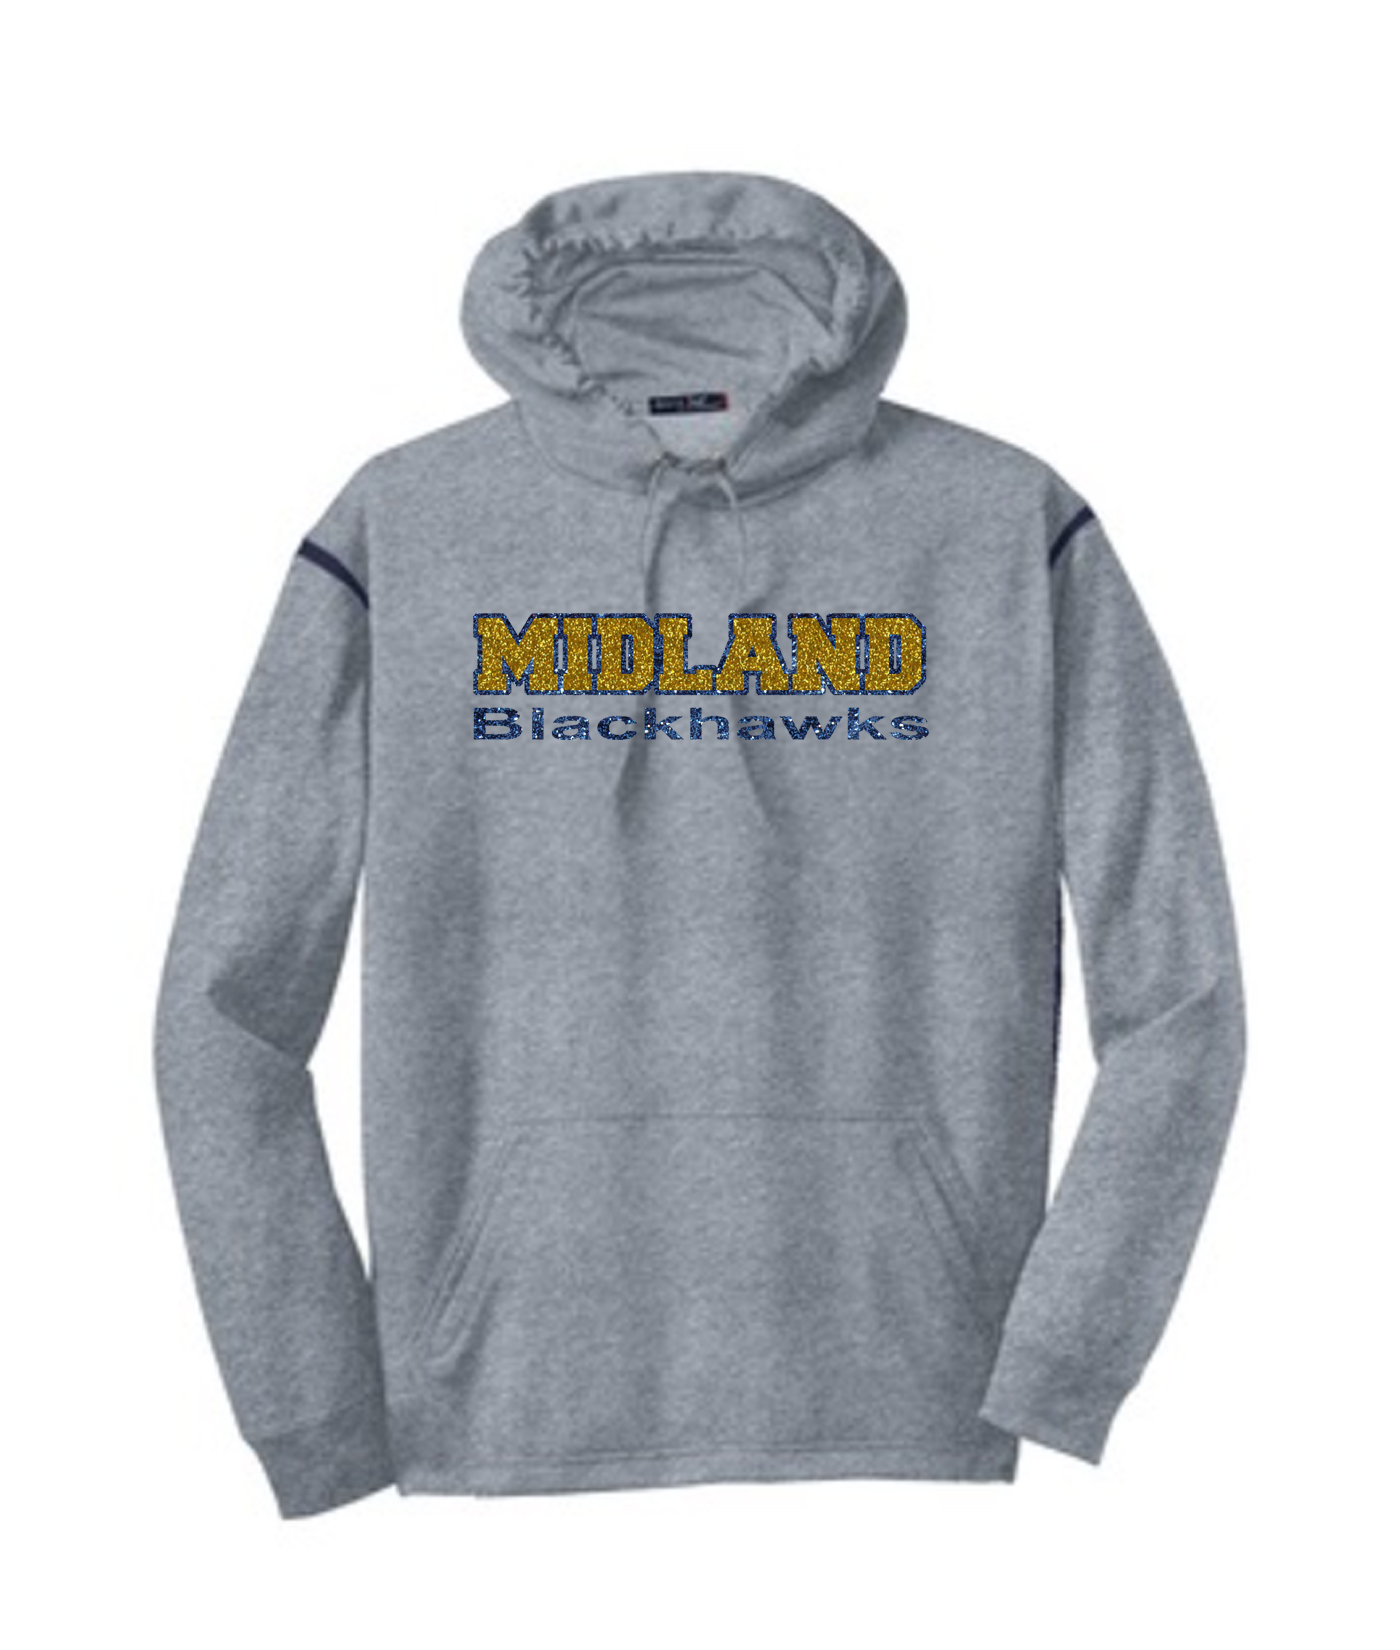 Sport-Tek Grey Tech Fleece Colorblock Hooded Sweatshirt Glitter Midland Blackhawks Navy Out Gold In